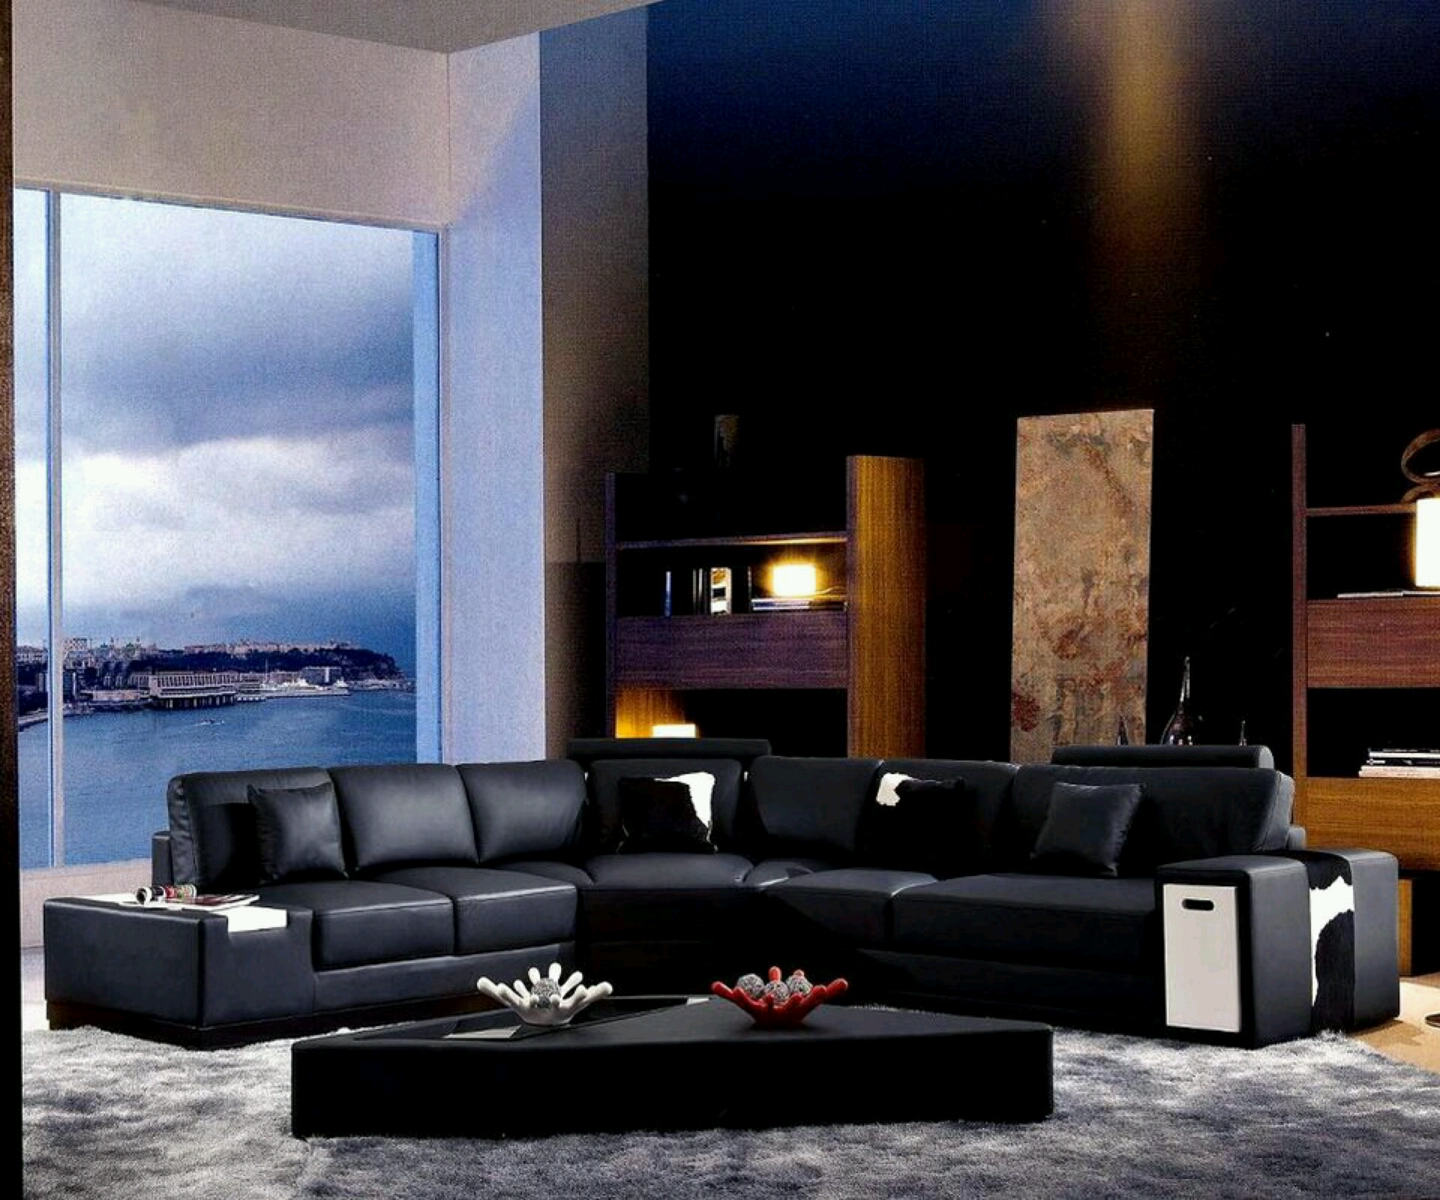 New home designs latest luxury living rooms interior Living room designs 2012